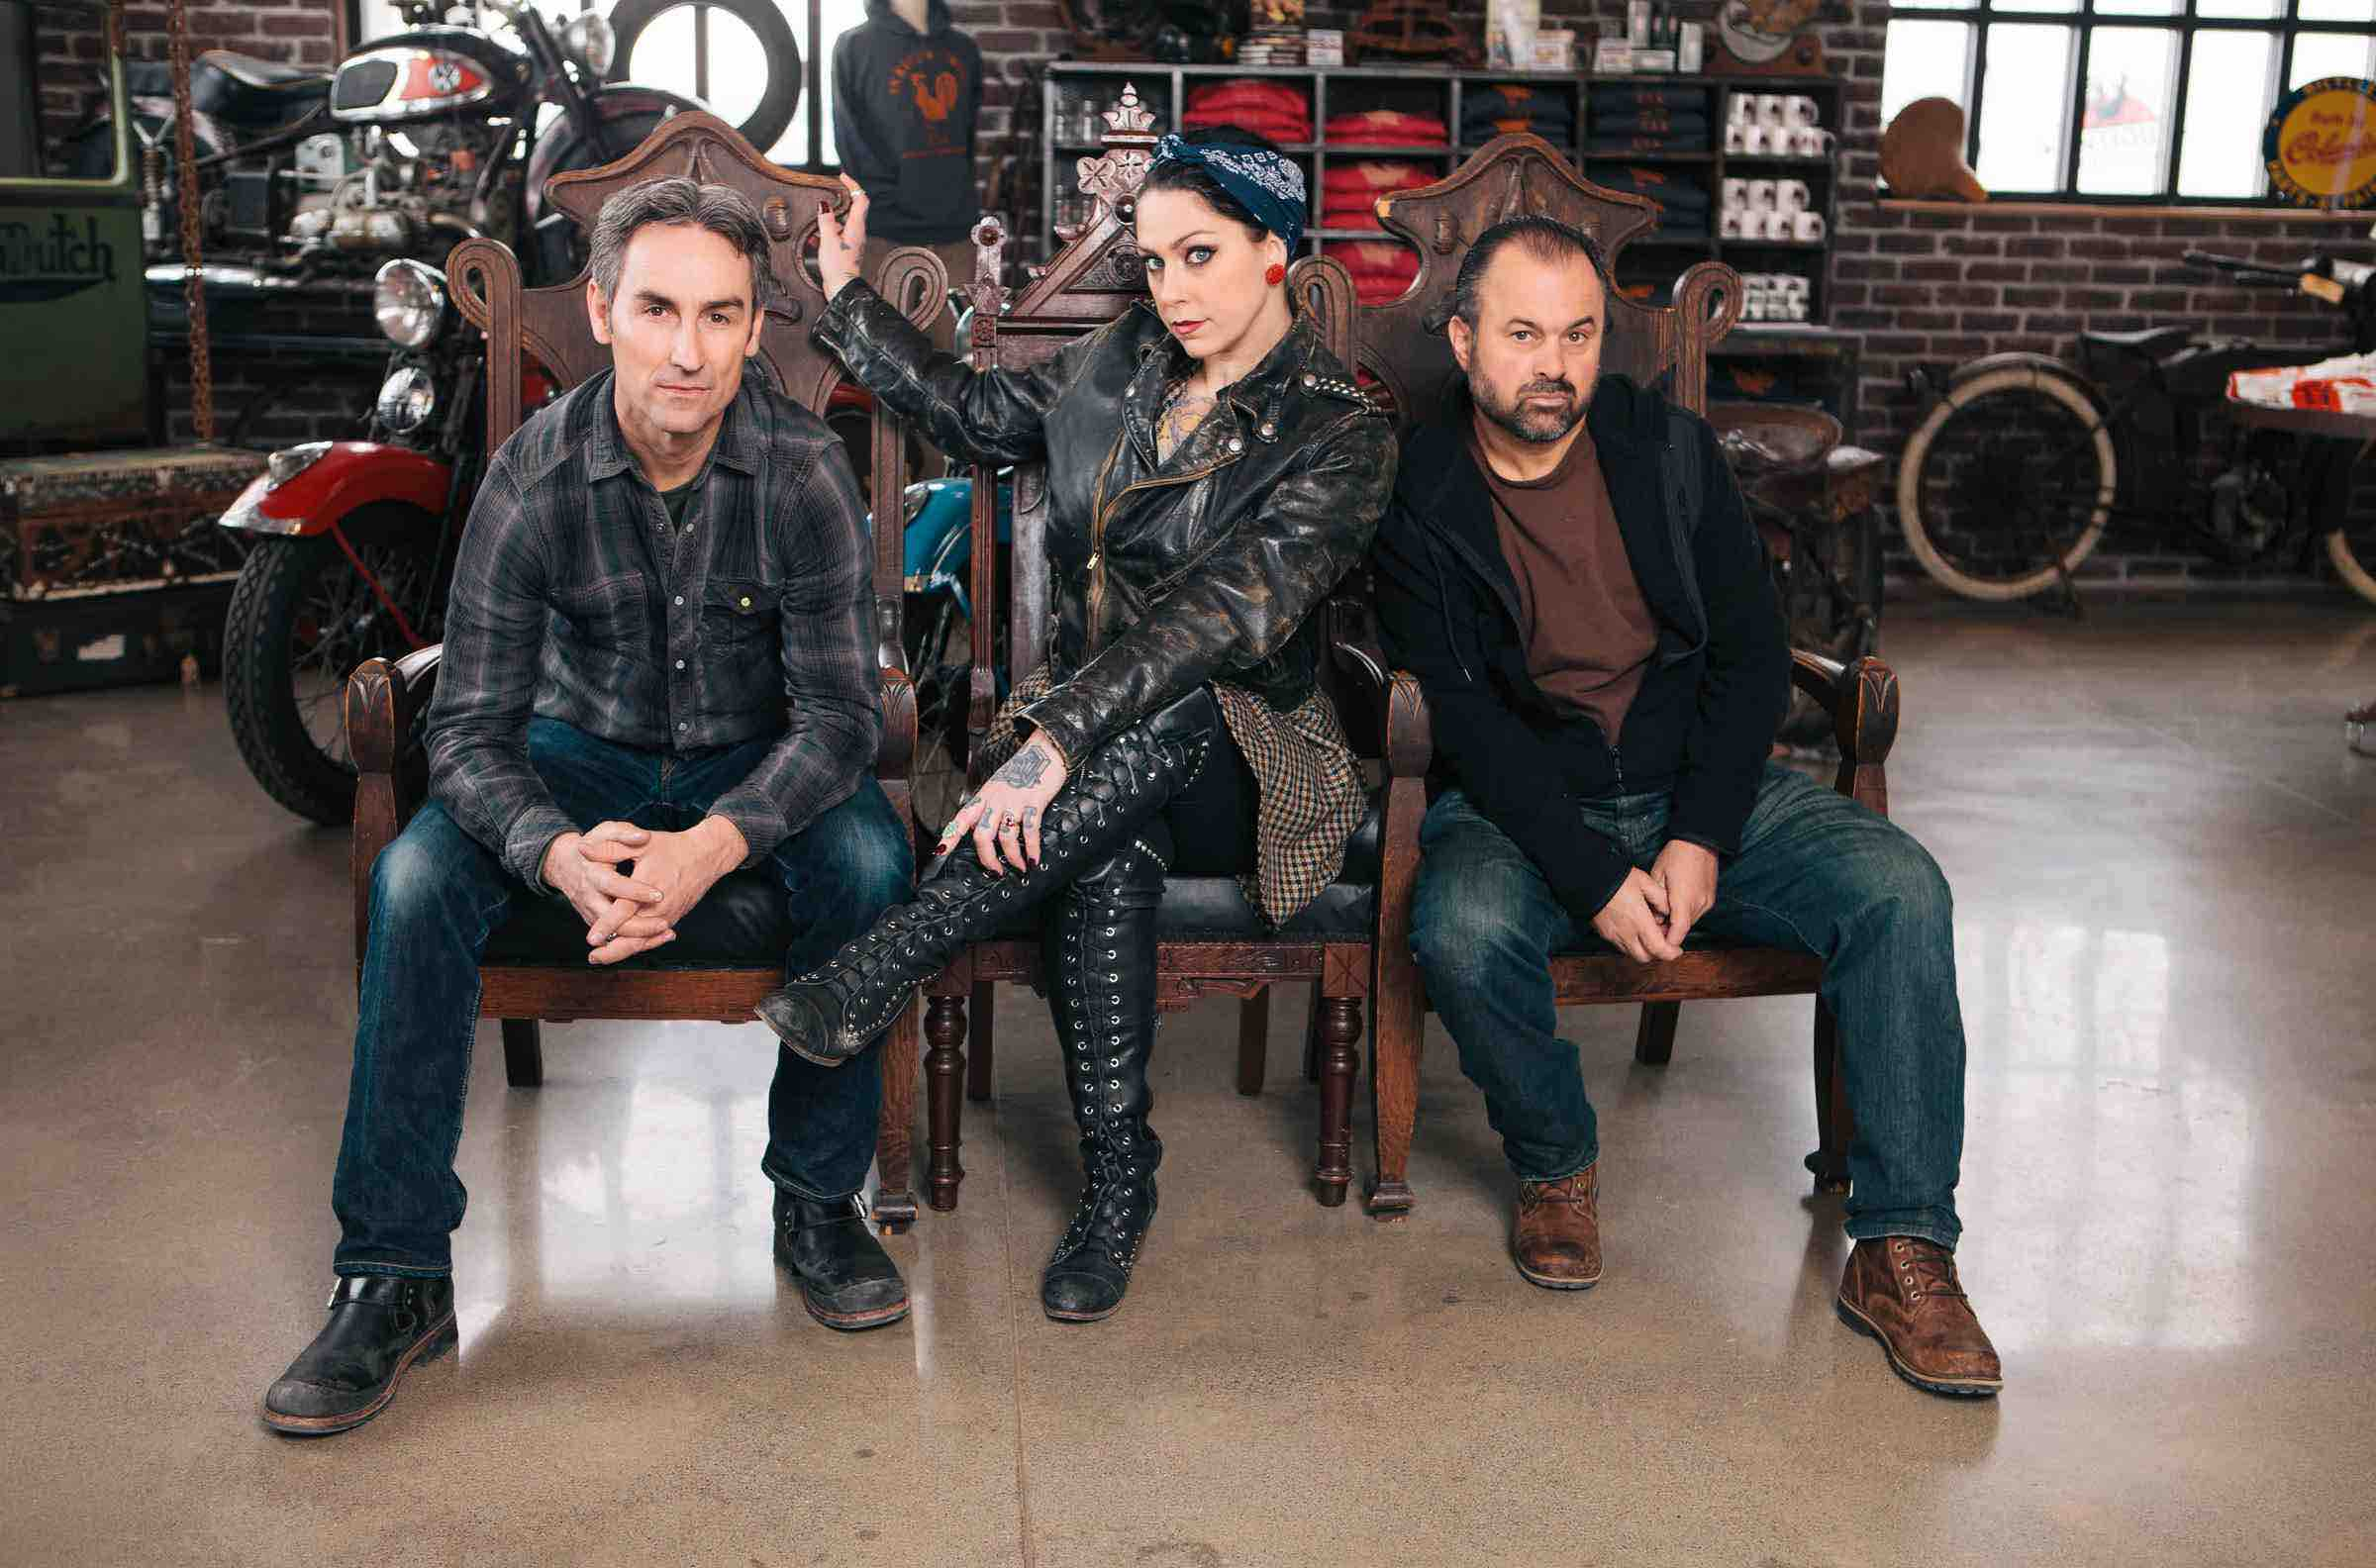 American Pickers is coming to Illinois and they are looking for leads